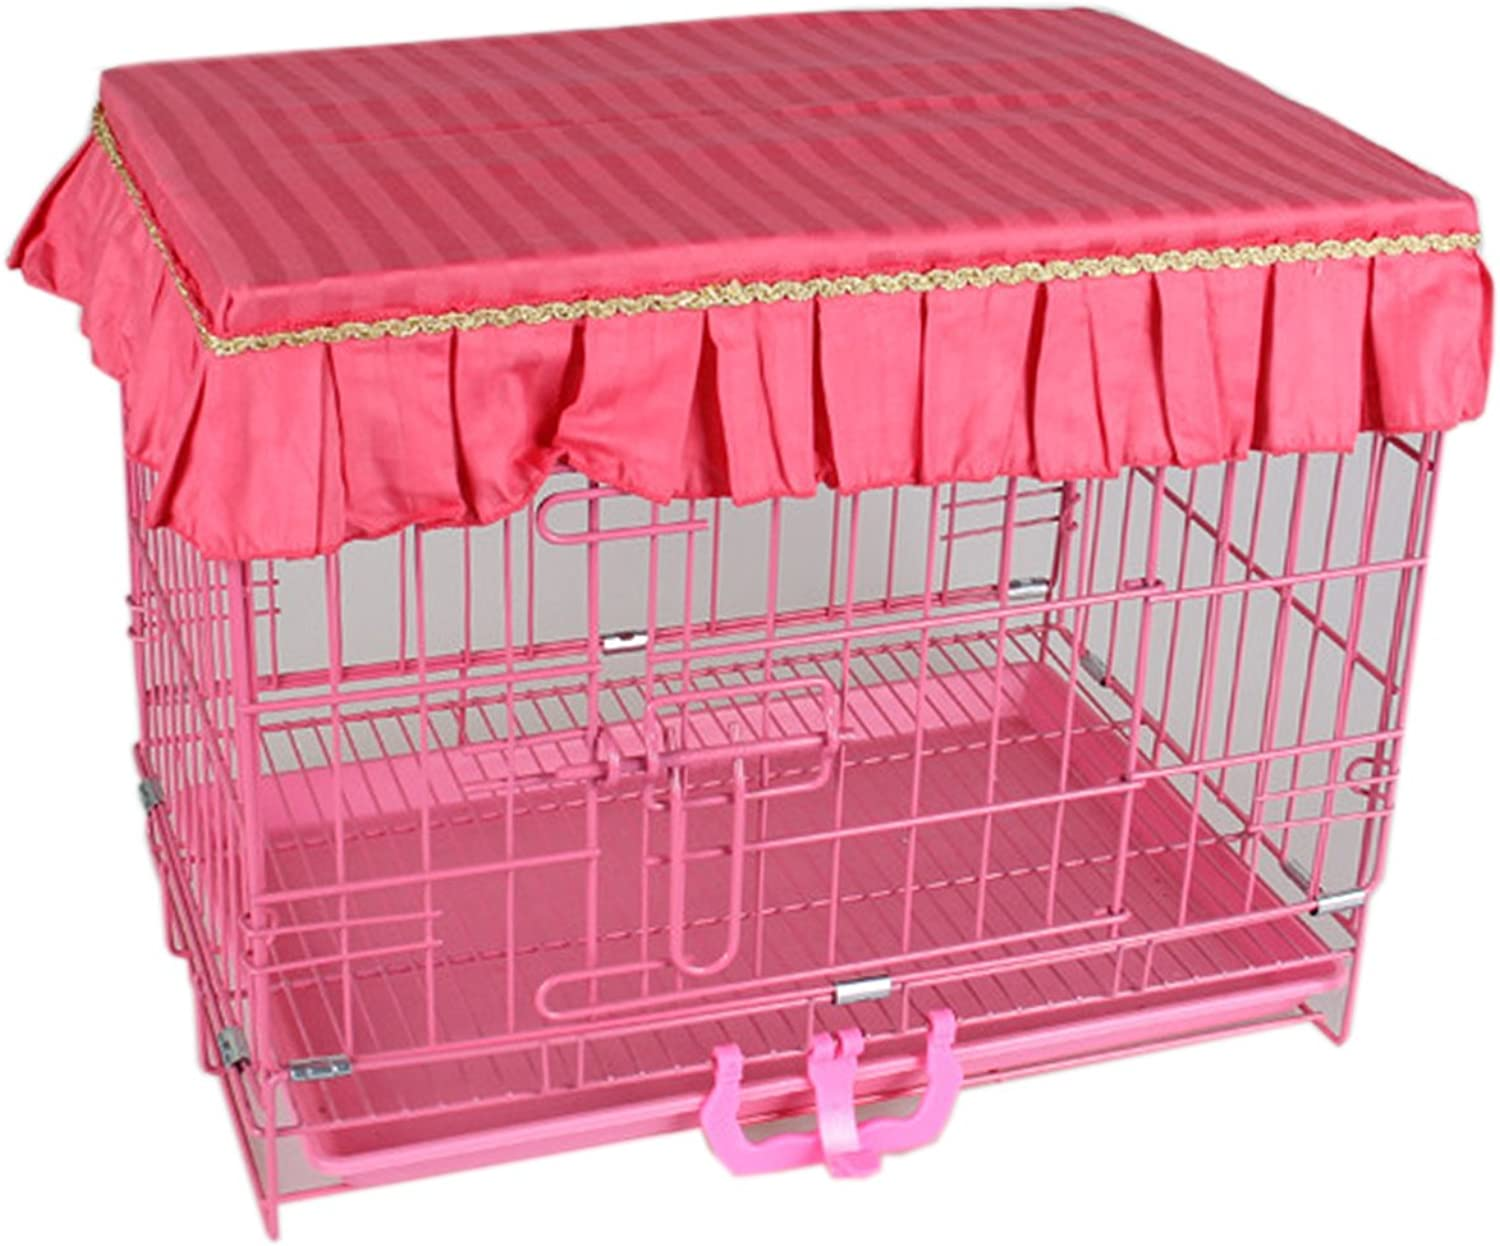 Alfie Pet  Slate Pet Top Crate Cover  color  Red, Size  S